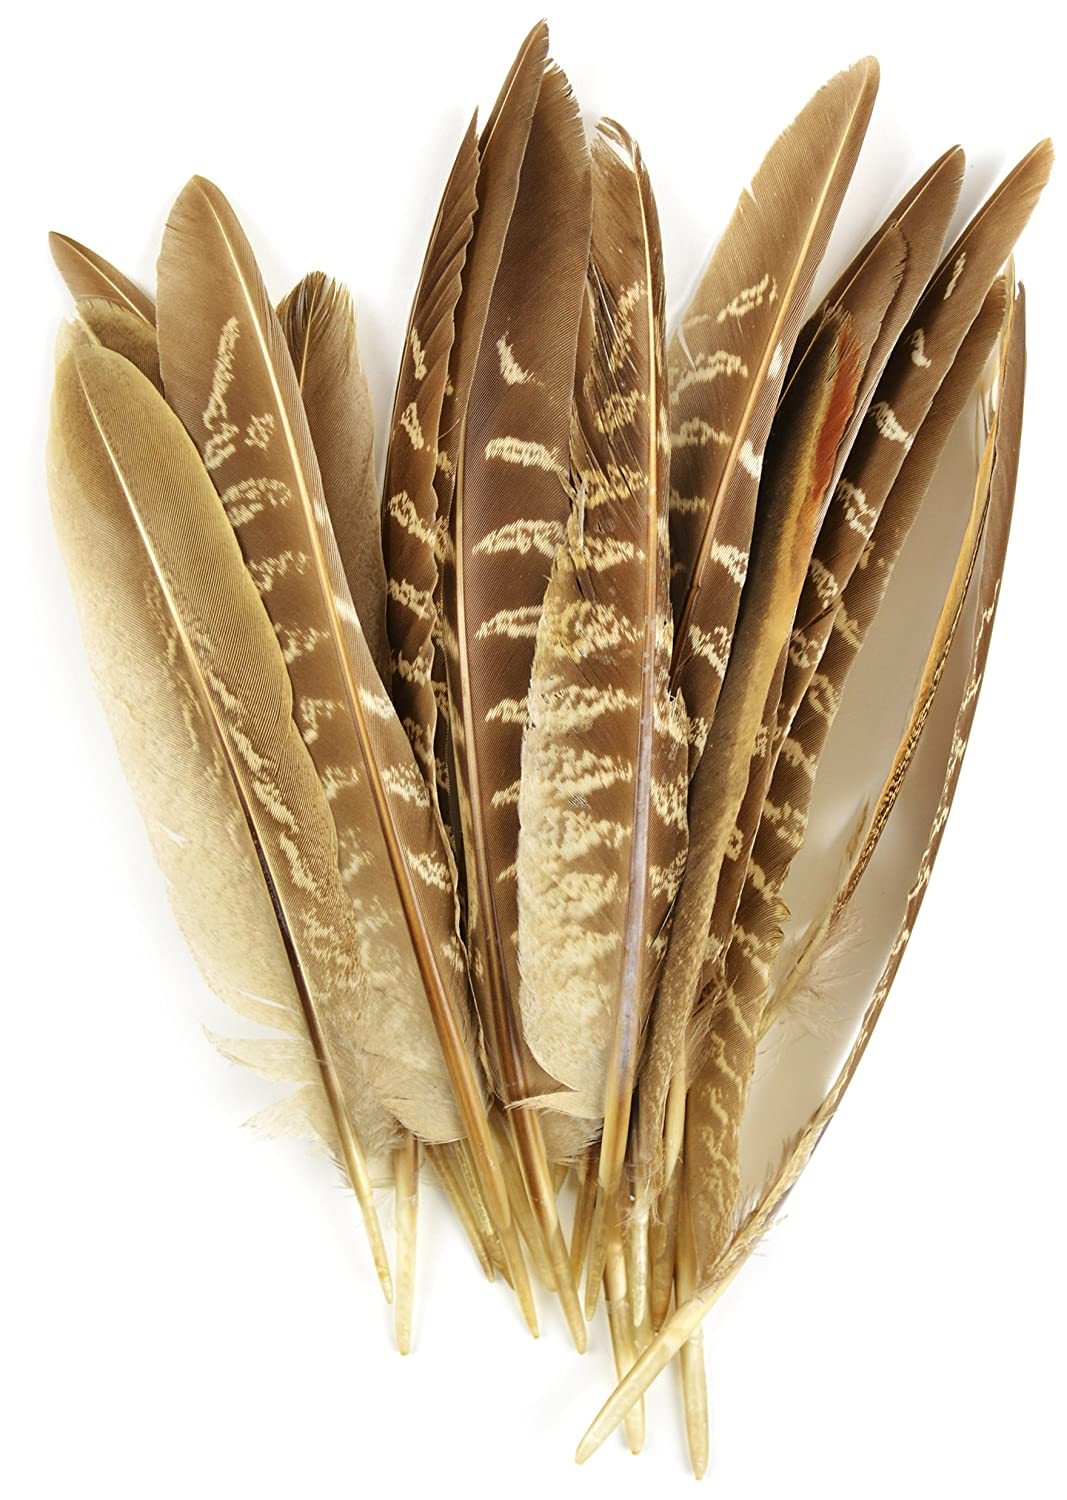 Touch of Nature 38192 Pheasant Wing Quill, 7-Inch Midwest Design Imports Inc.